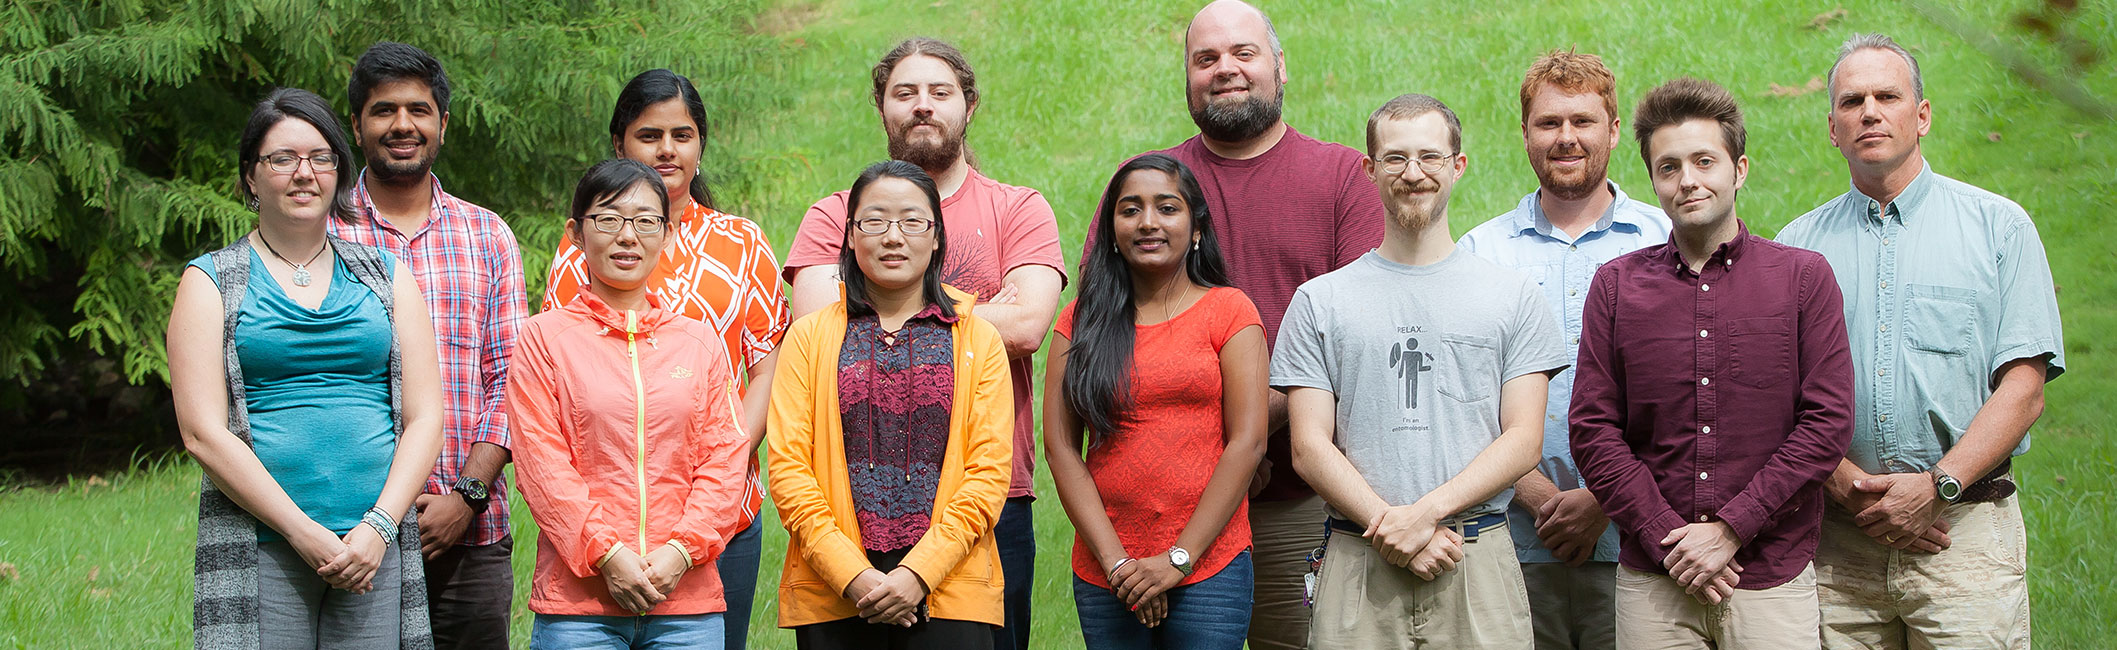 Group Photo - Fall Class 2017 Graduate Students